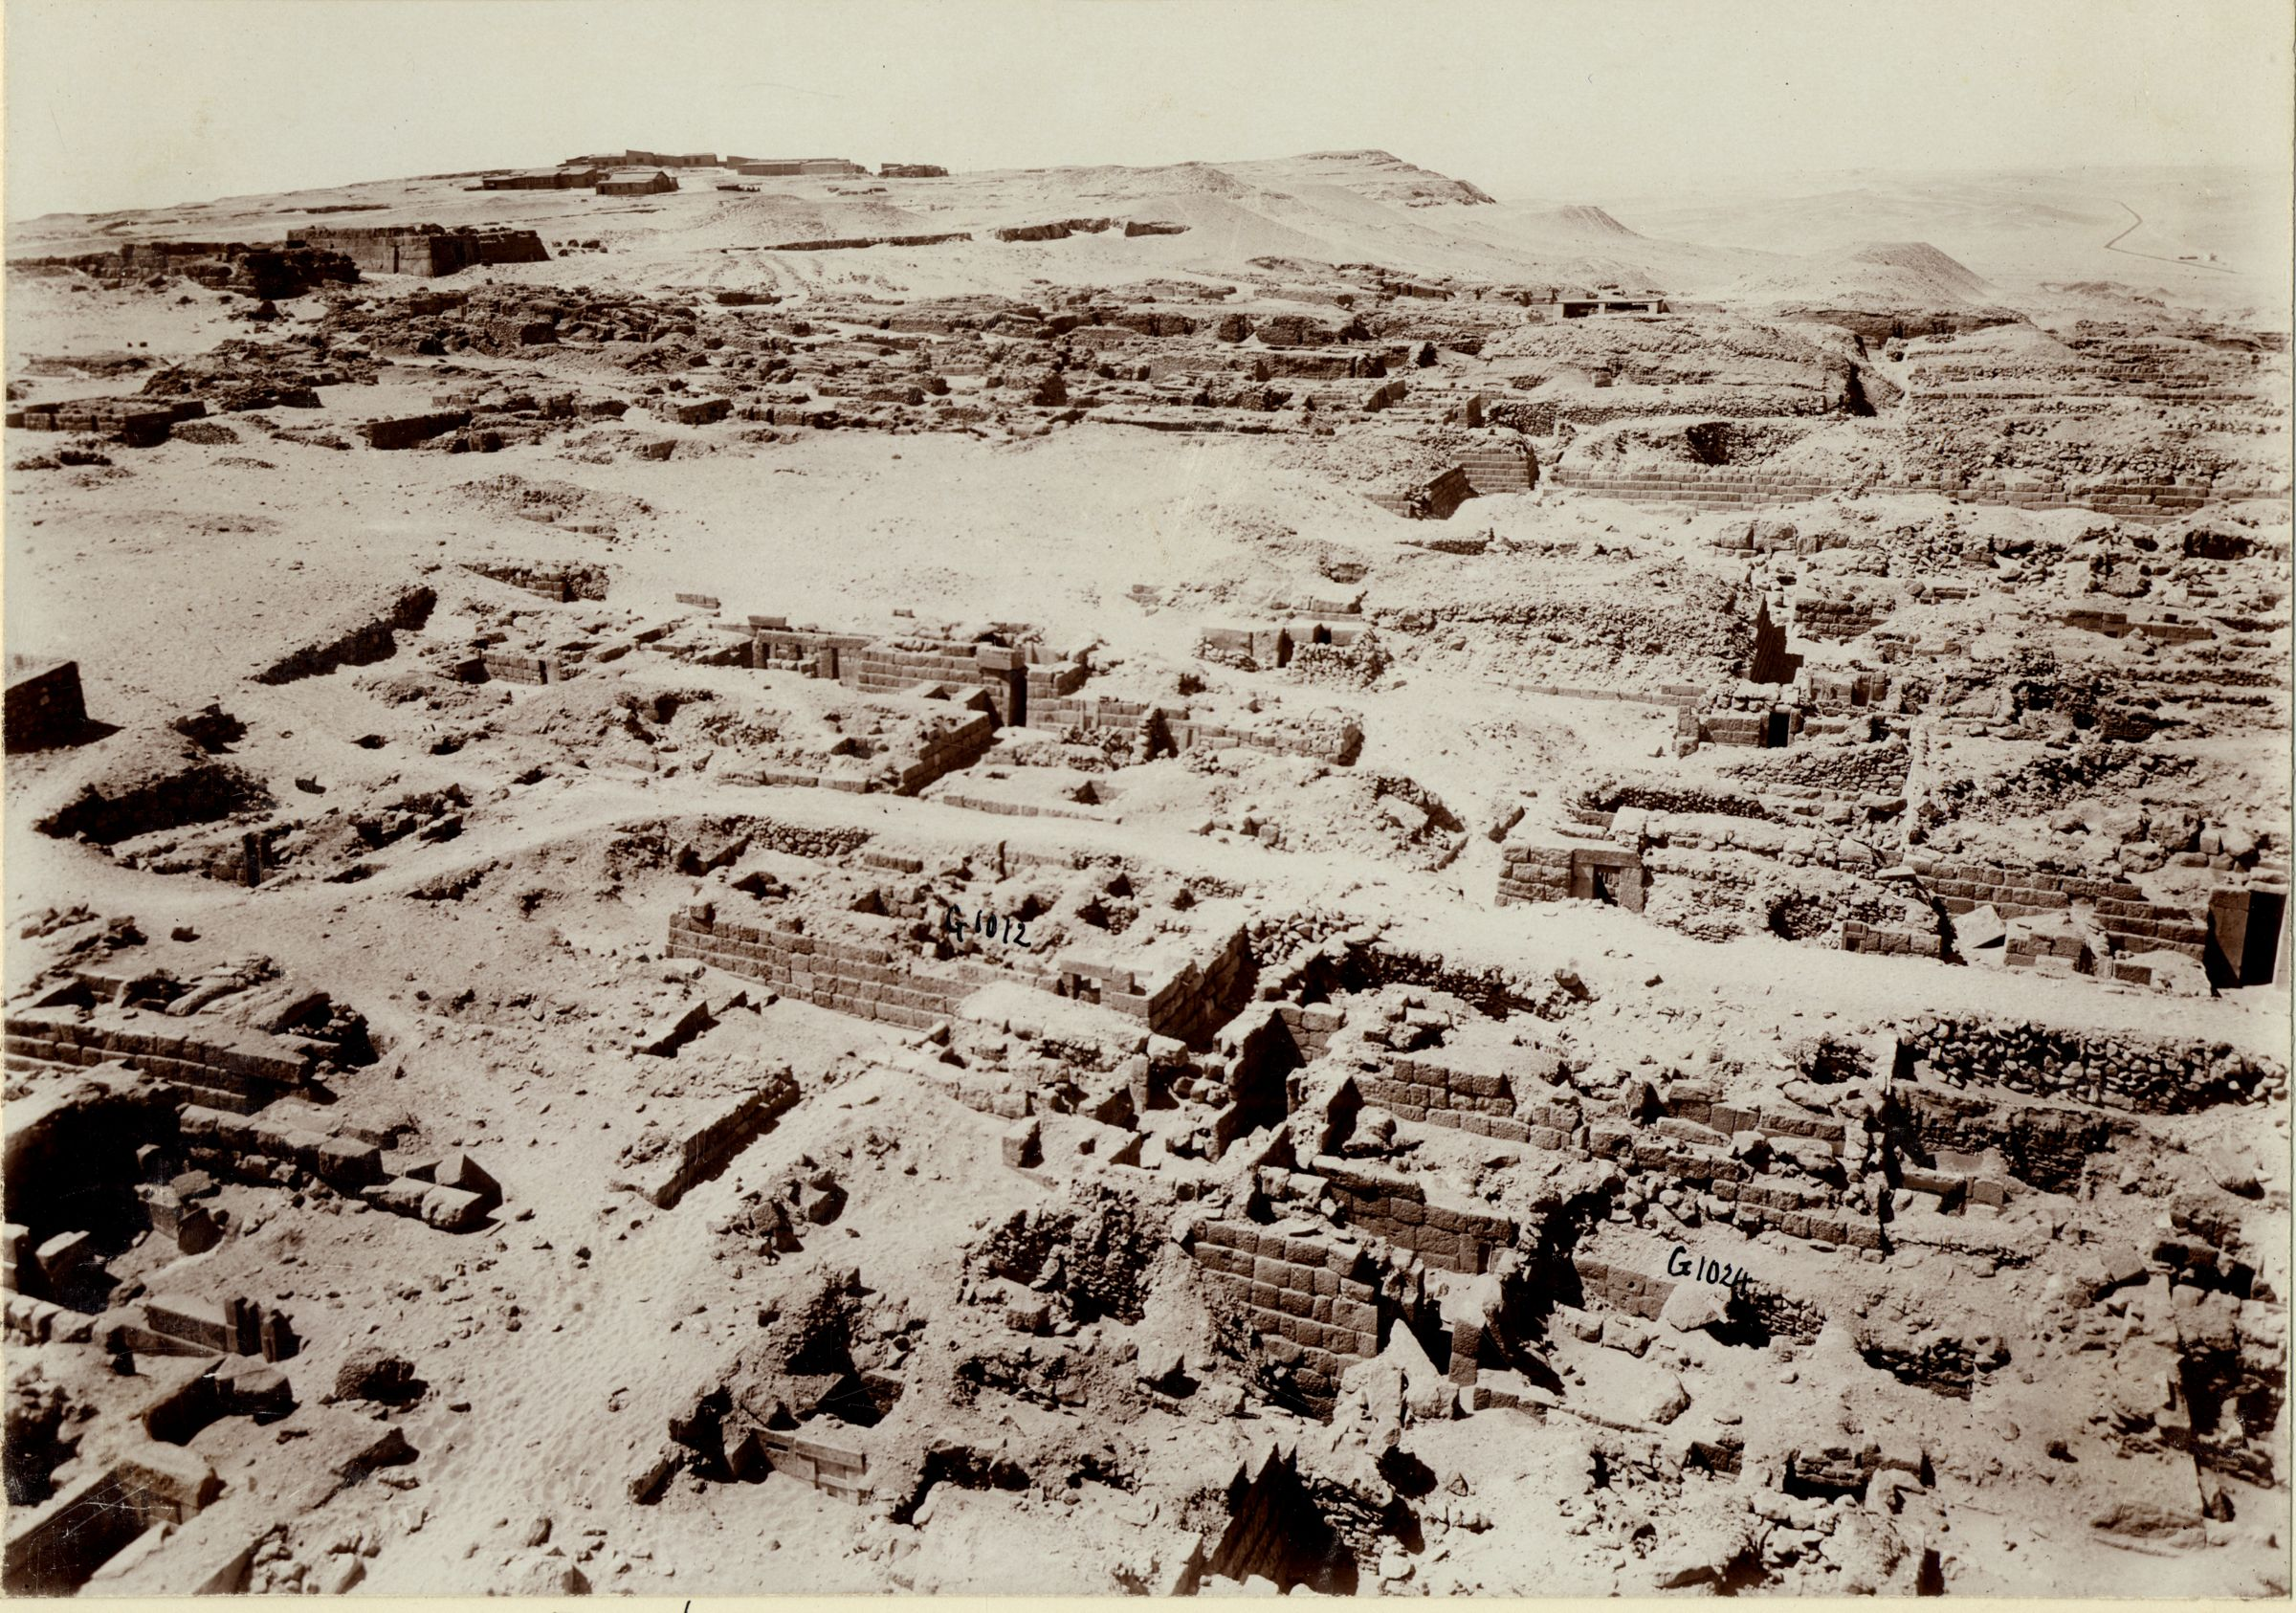 Western Cemetery: Site: Giza; View: G 1024, G 1012